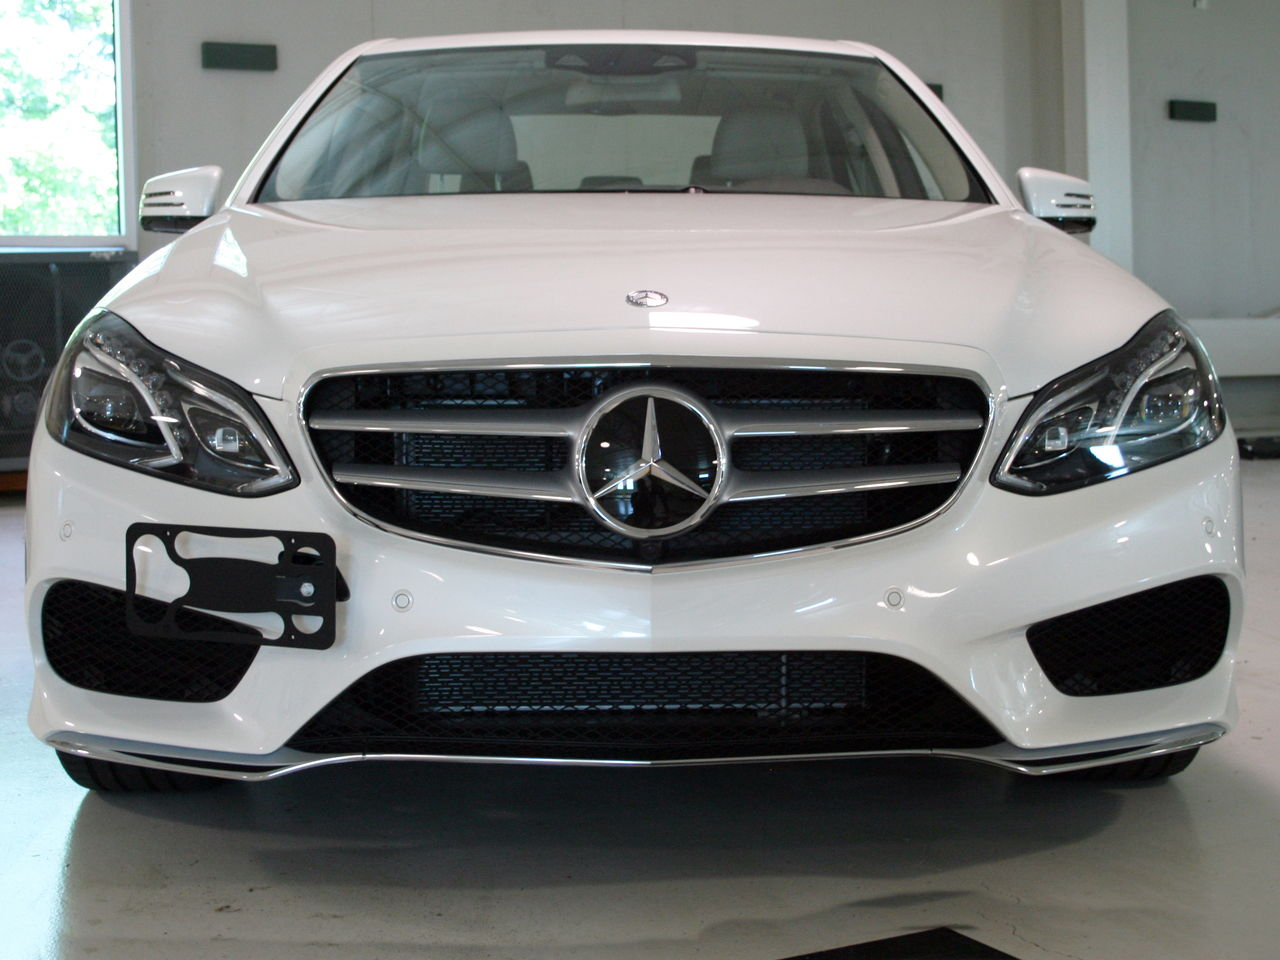 Front License Plate Solution For Facelift E63 Tow Hook Plate Mbworld Org Forums